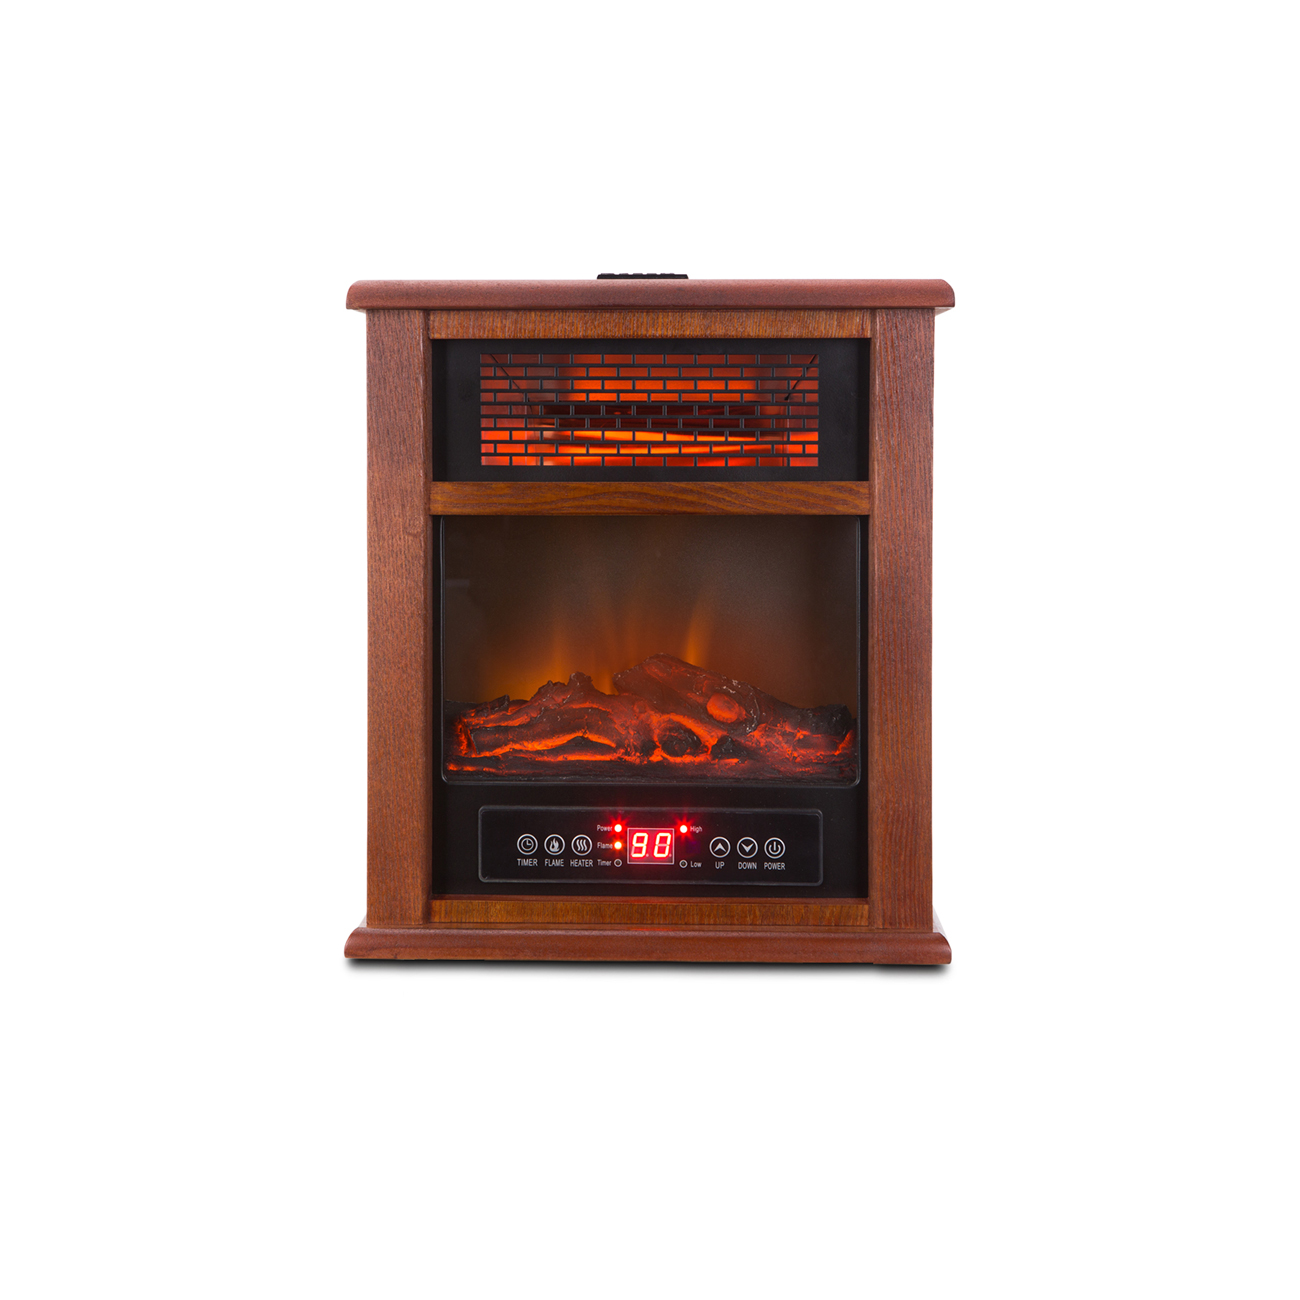 Portable Electric 4 Element Infrared Stove Fireplace Wood